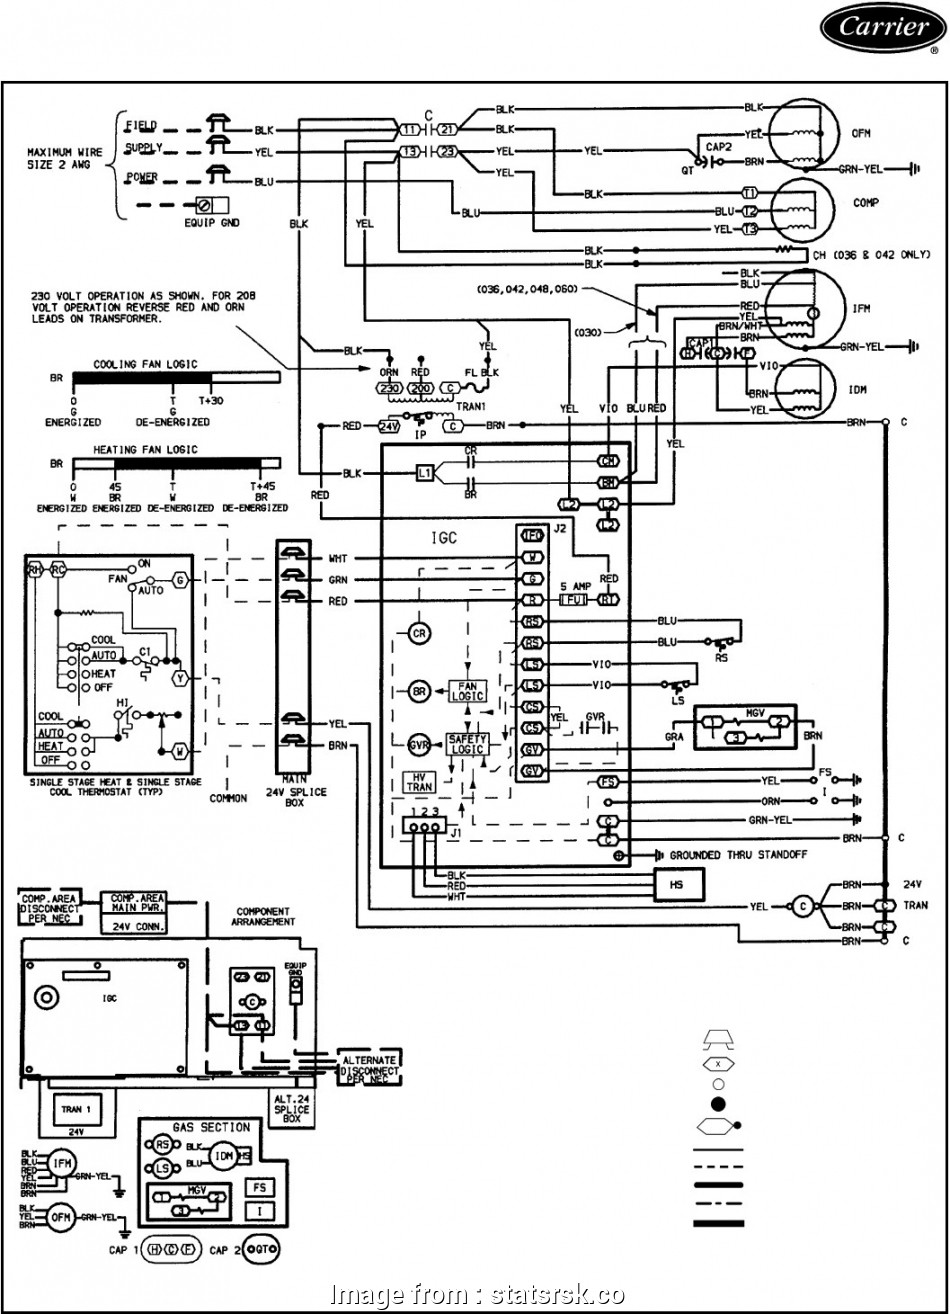 Single Stage Thermostat Wiring Diagram Simple Carrier Electric Furnace Thermostat Wiring Trusted